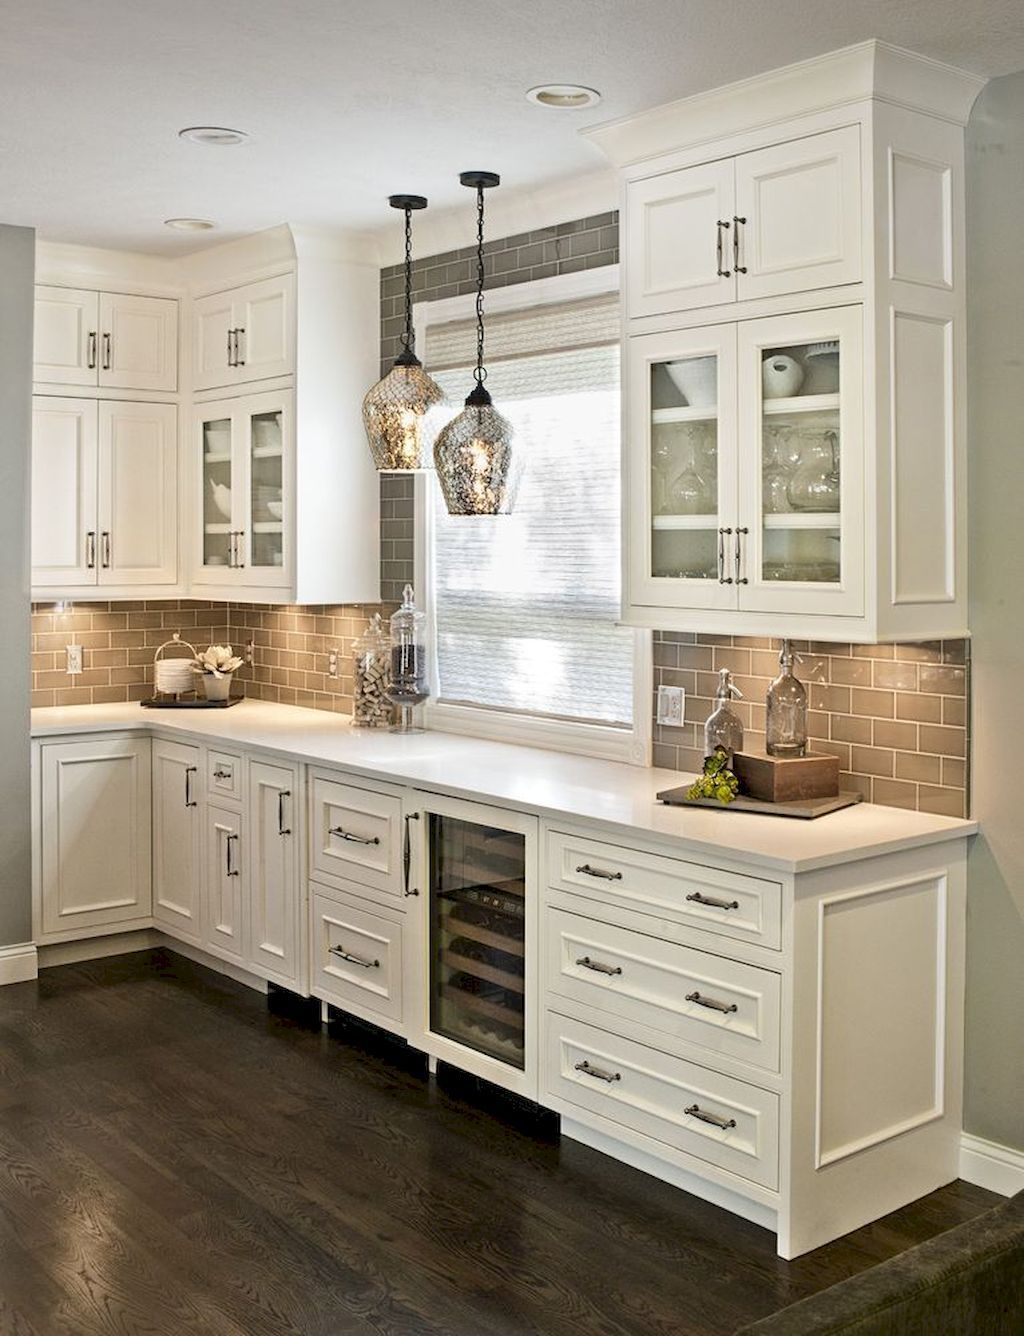 Enchanting How To Polyurethane Kitchen Cabinets Composition - Best ...